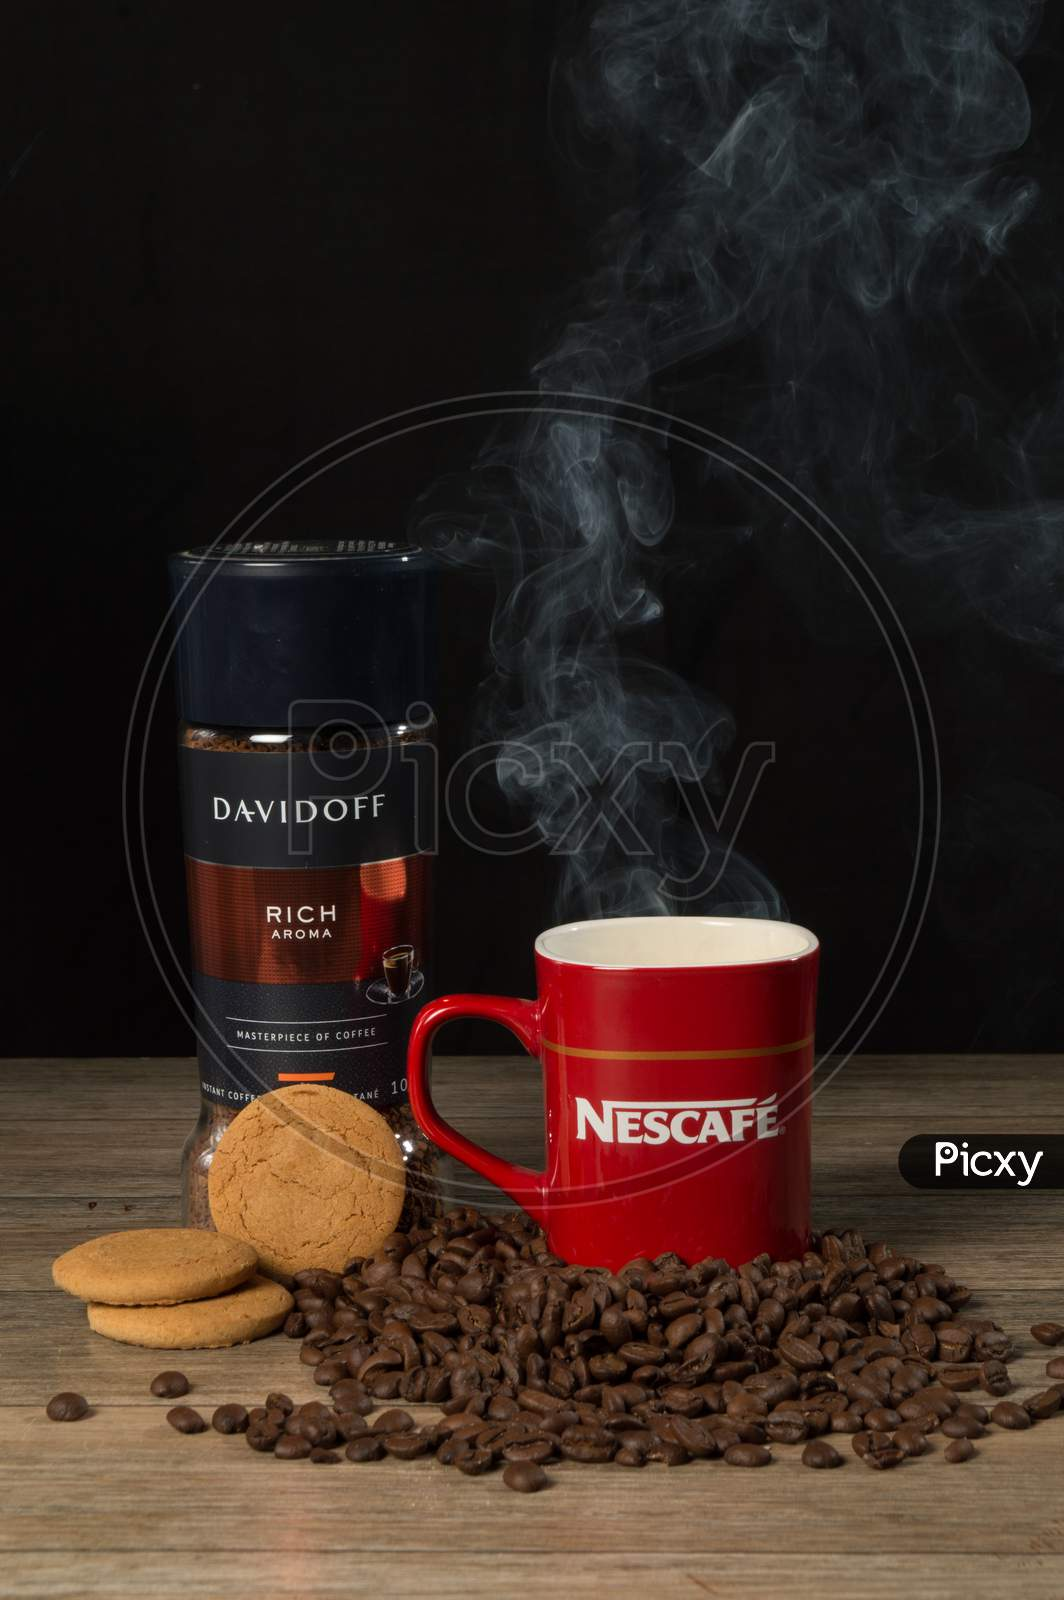 Smoky Coffee In Red Nescafe Mug With Raw Coffee Beans, Cookies, David Off Coffee On A Table And Black Background.